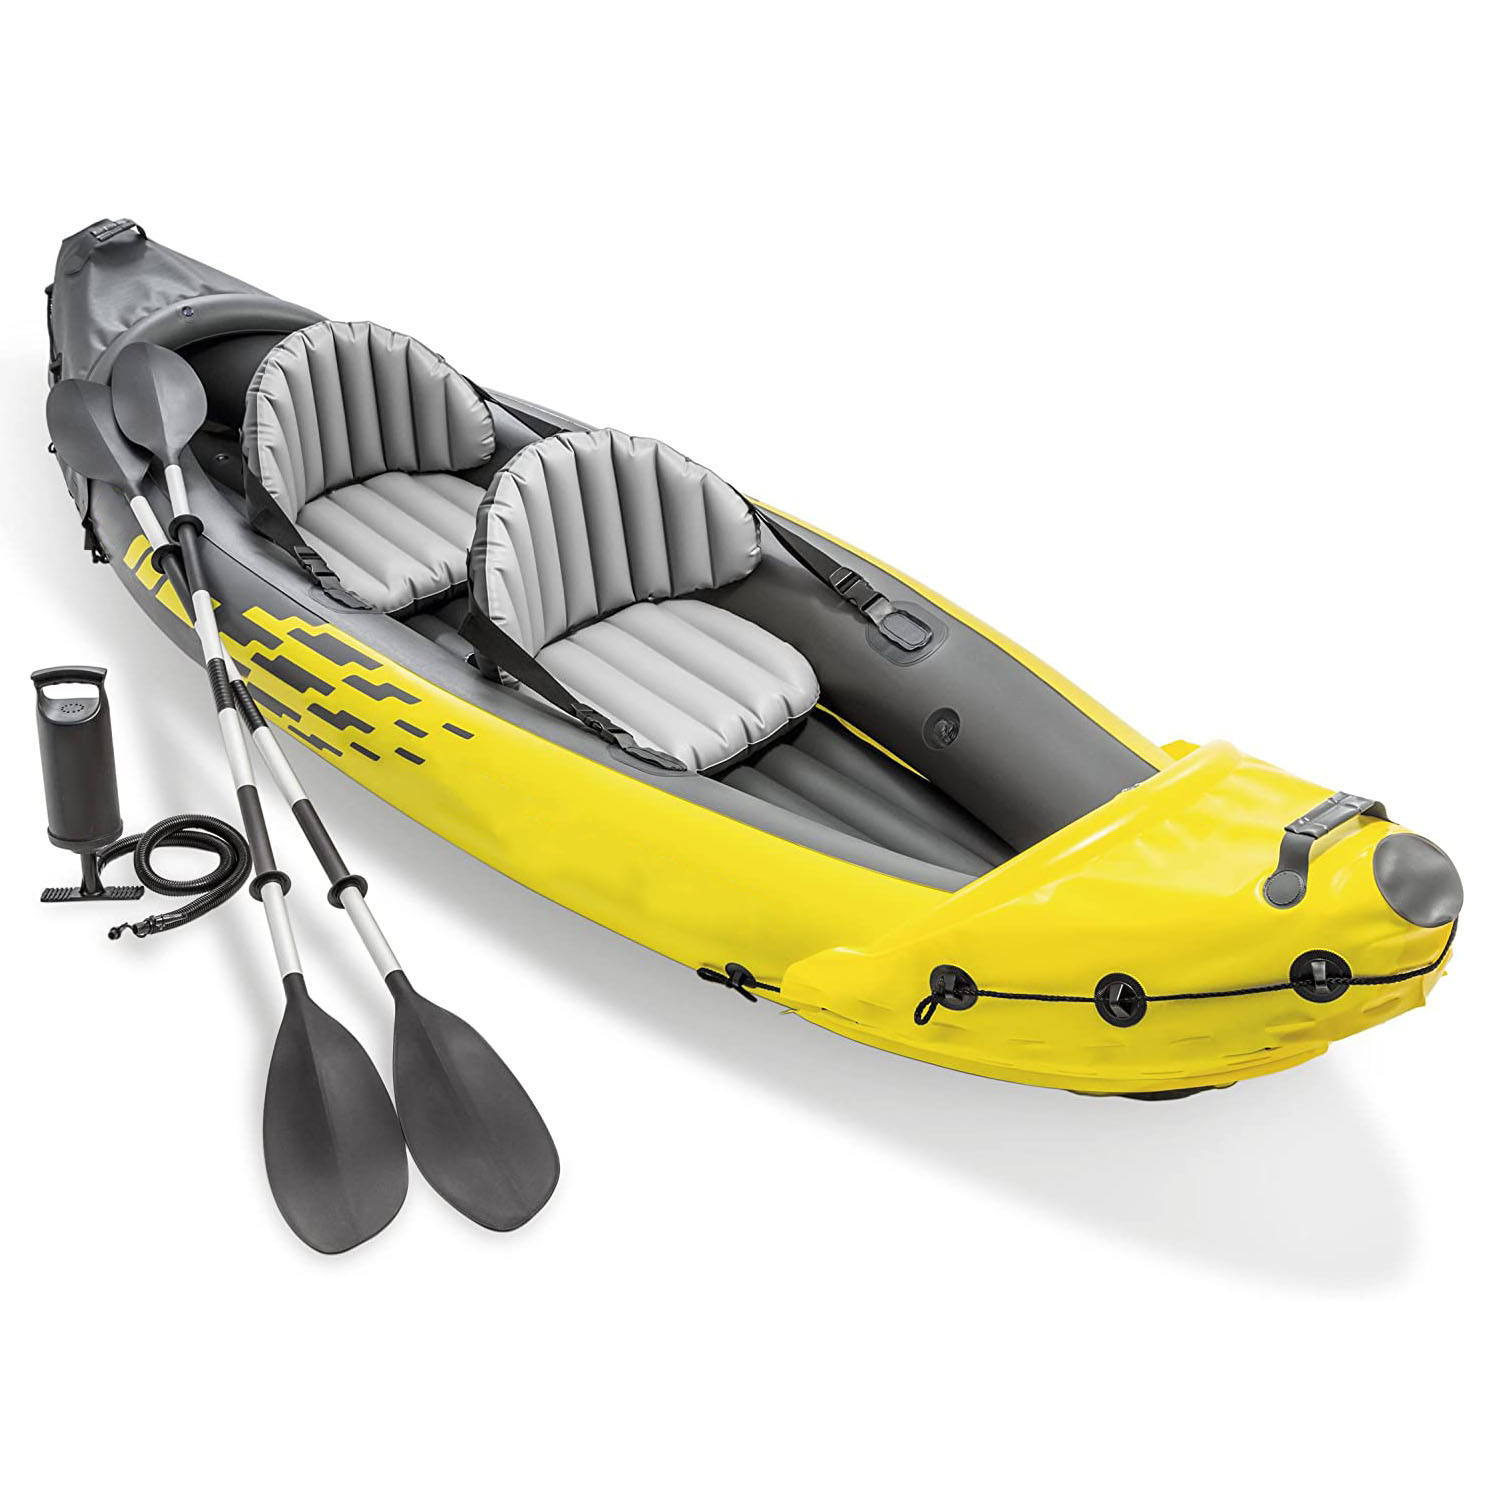 Factory direct sales are cheap Durable High quality PVC Factory Price 1-4 Person inflatable Kayak Canoe boat fishing kayak boat